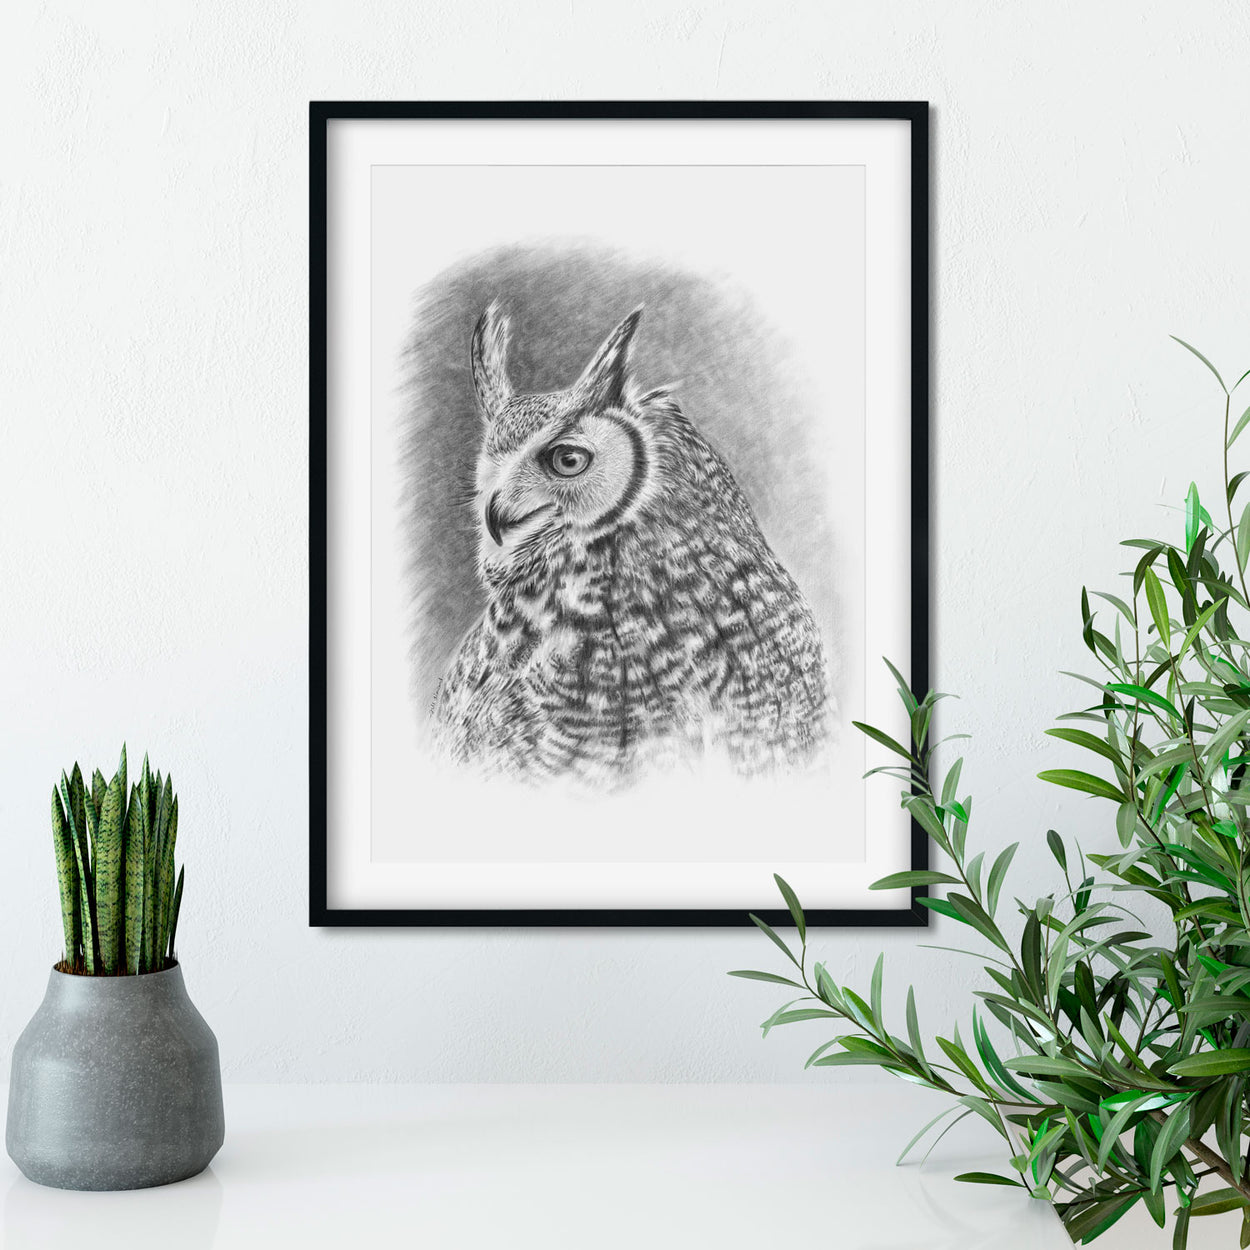 Great Horned Owl Drawing Framed Wall - The Thriving Wild - Jill Dimond